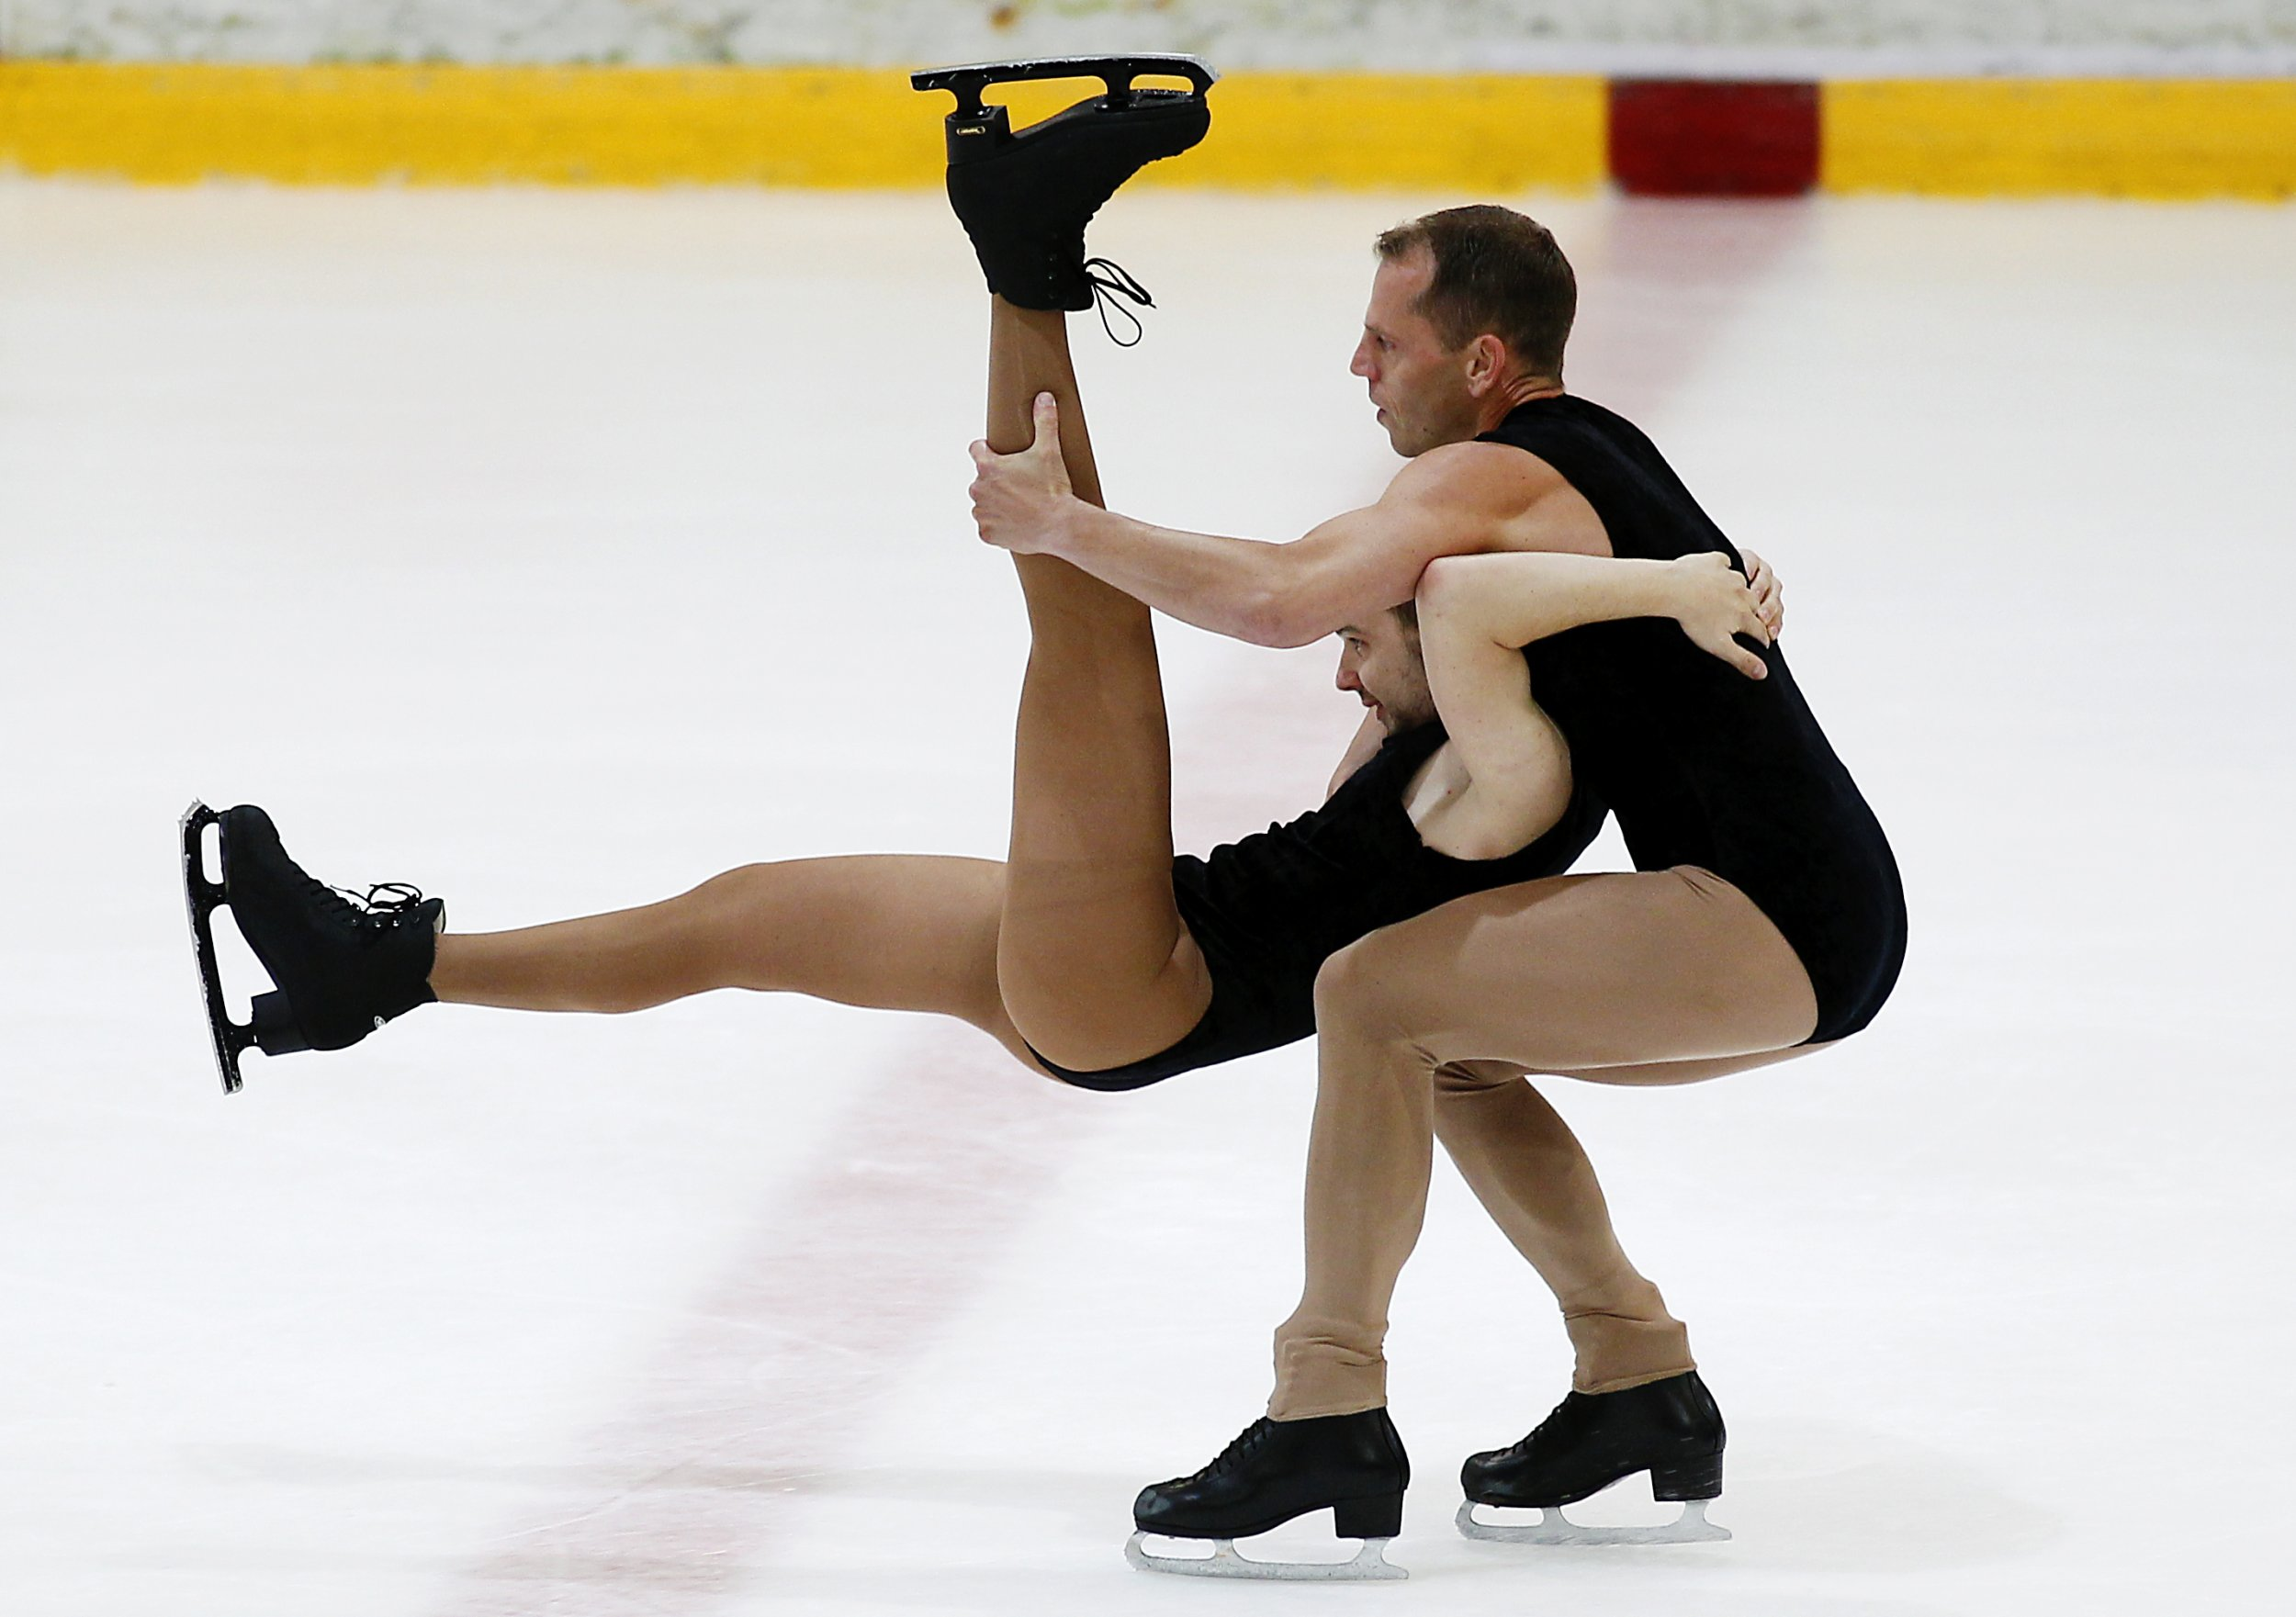 LGBT Moments in Figure-Skating History: www.newsweek.com/lgbt-moments-figure-skating-history-227576